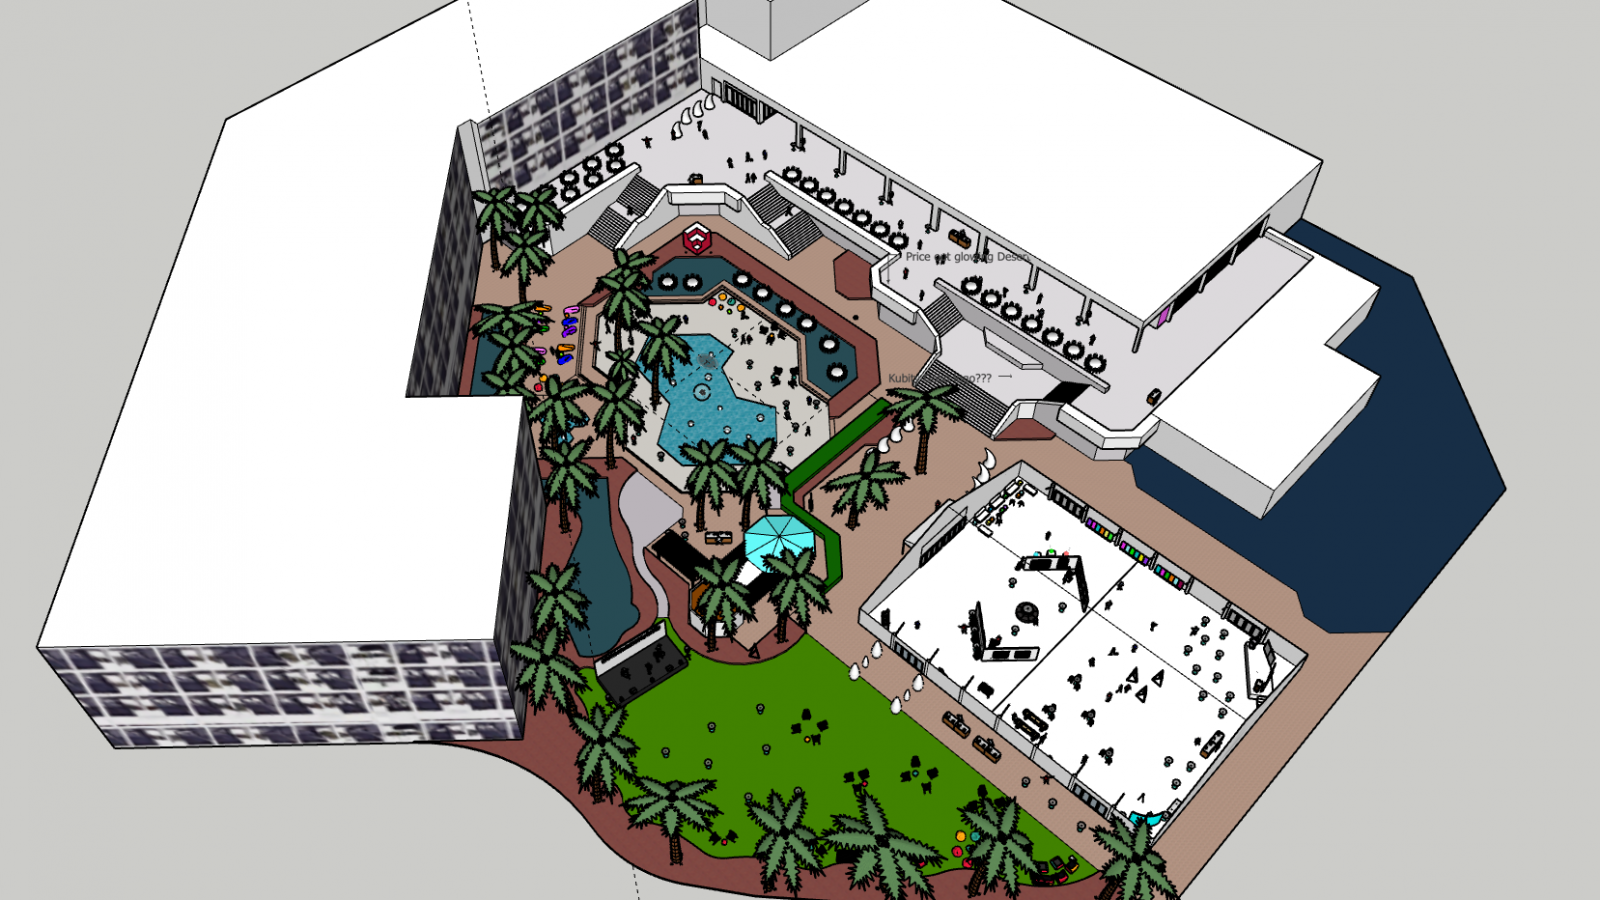 Sketchup_model_desert_glow_party